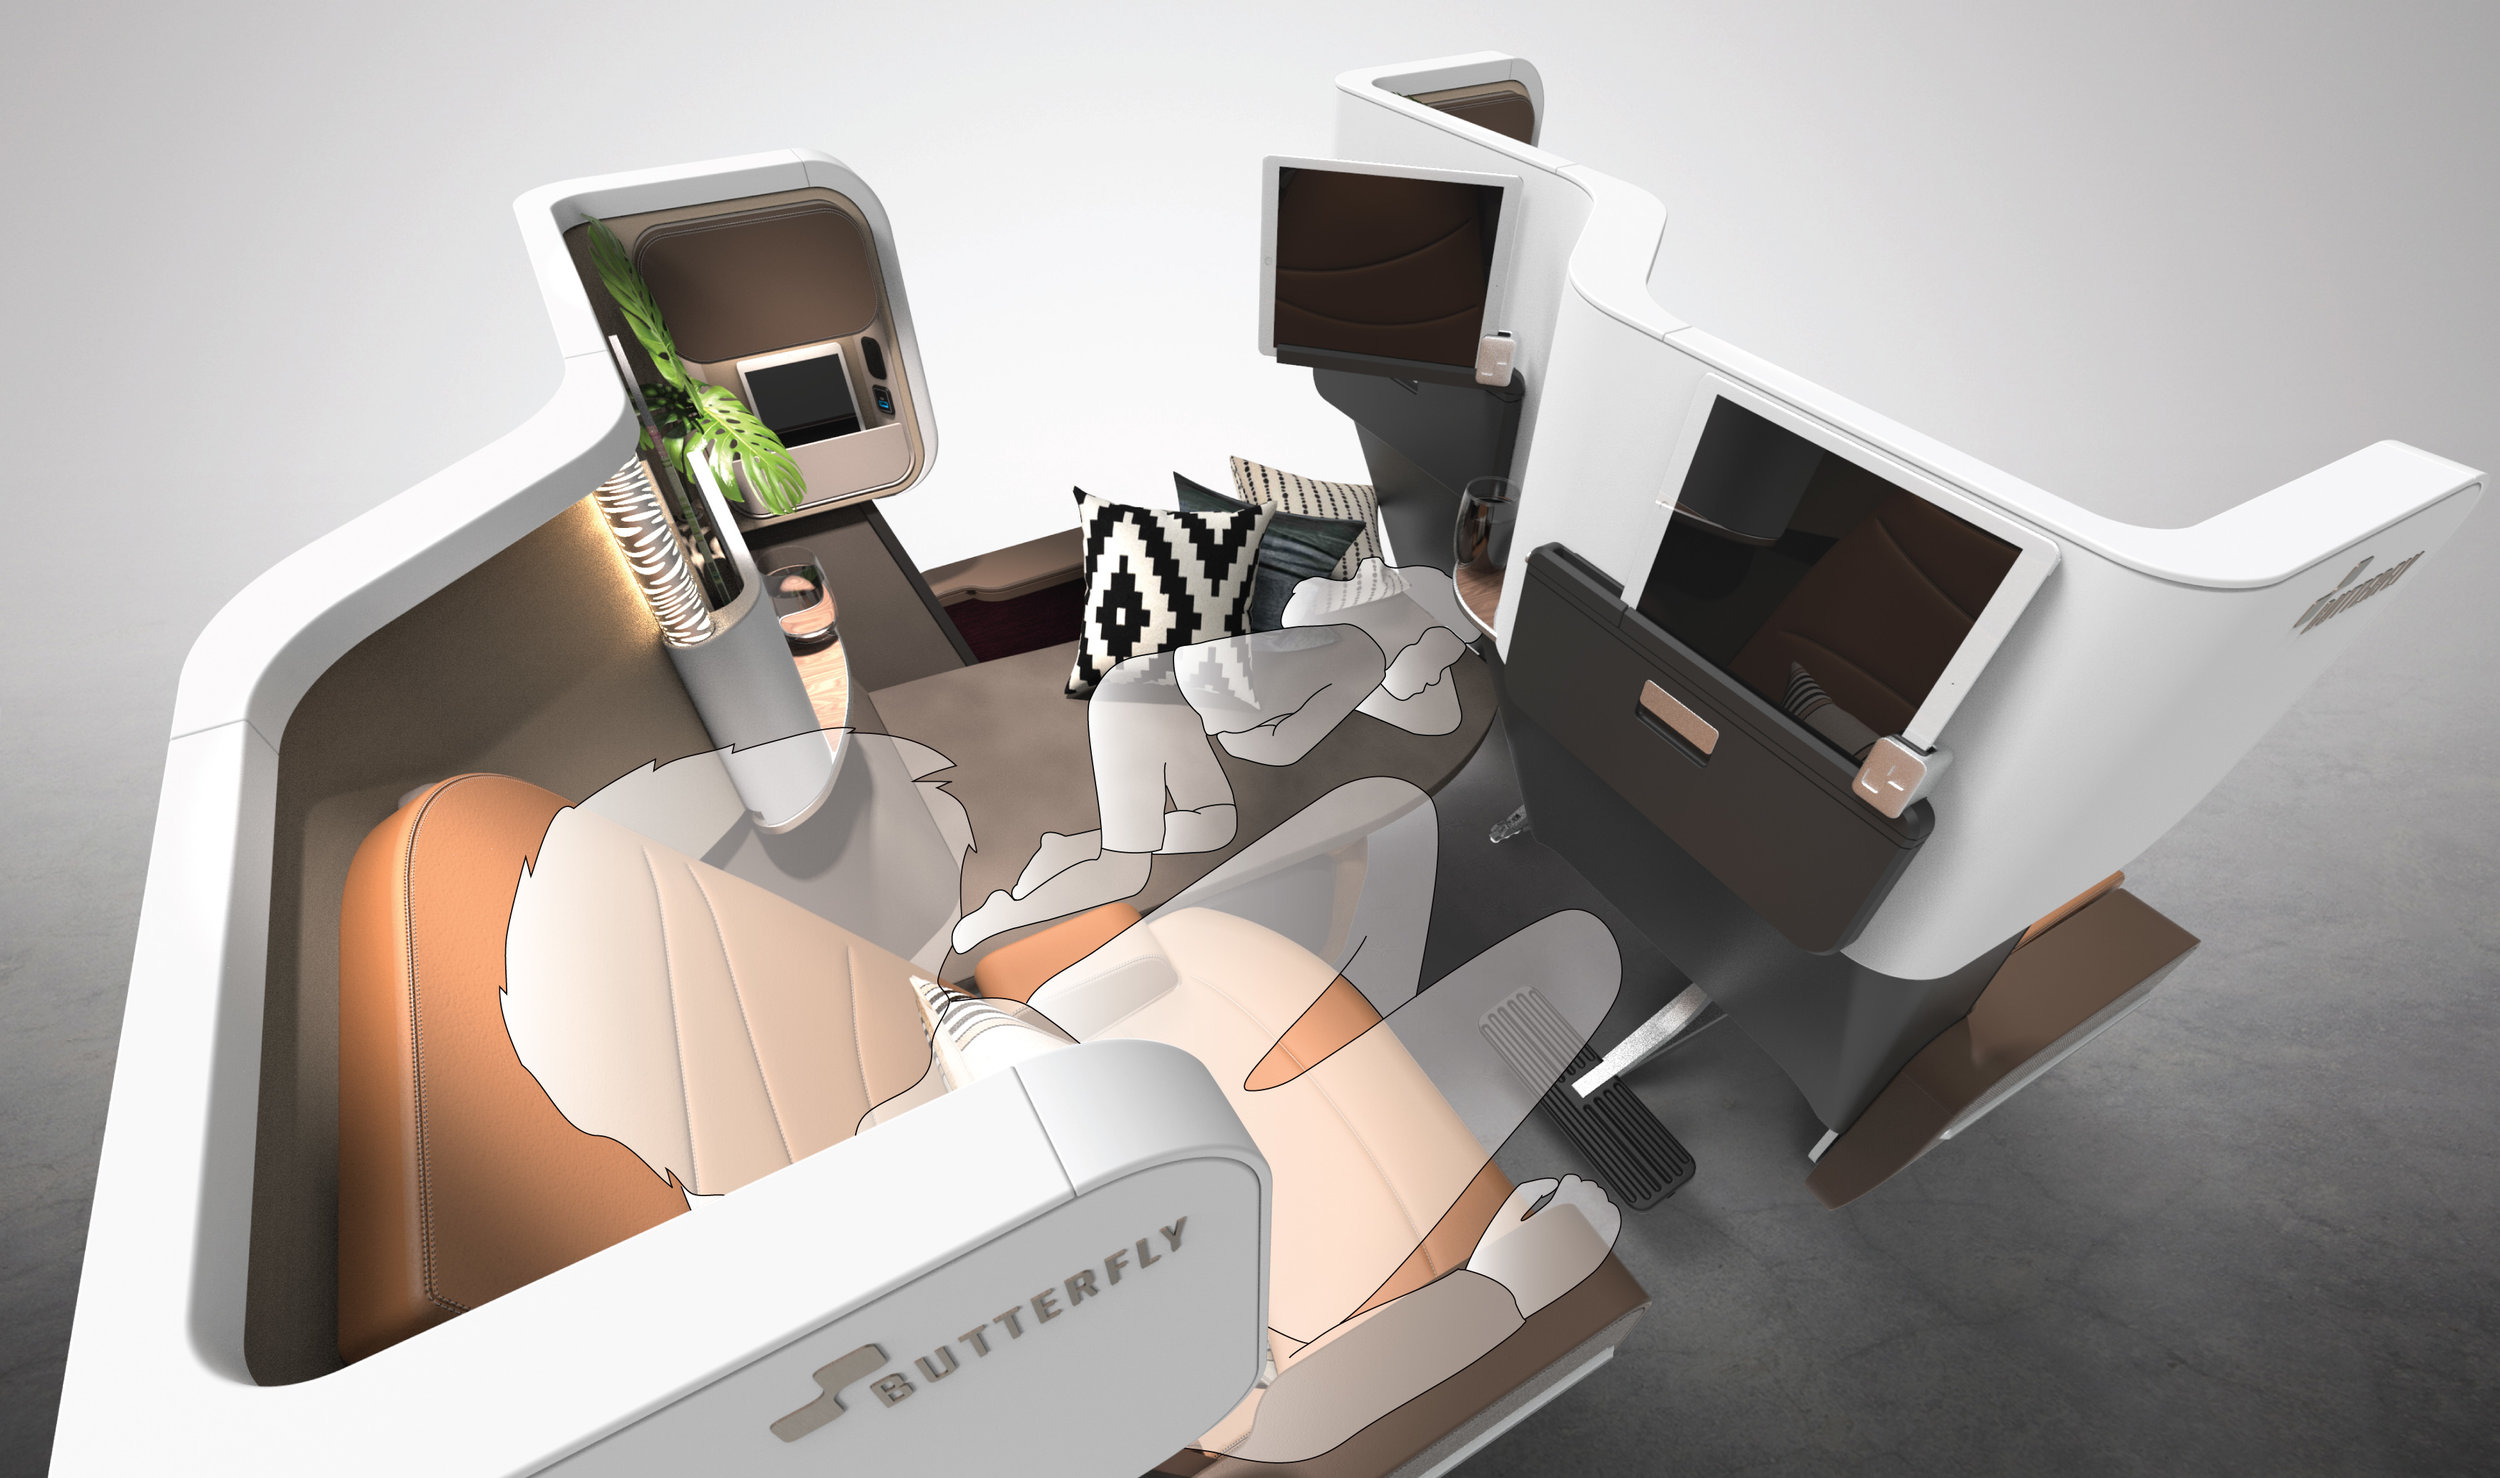 Family Time - In premium economy, airlines may choose to activate couches for little children to sleep more comfortably especially during very long flights. bringing tranquility to the people around – increasing the wellbeing of the kids and reducing the stress level of the parents and of course surrounding passengers.